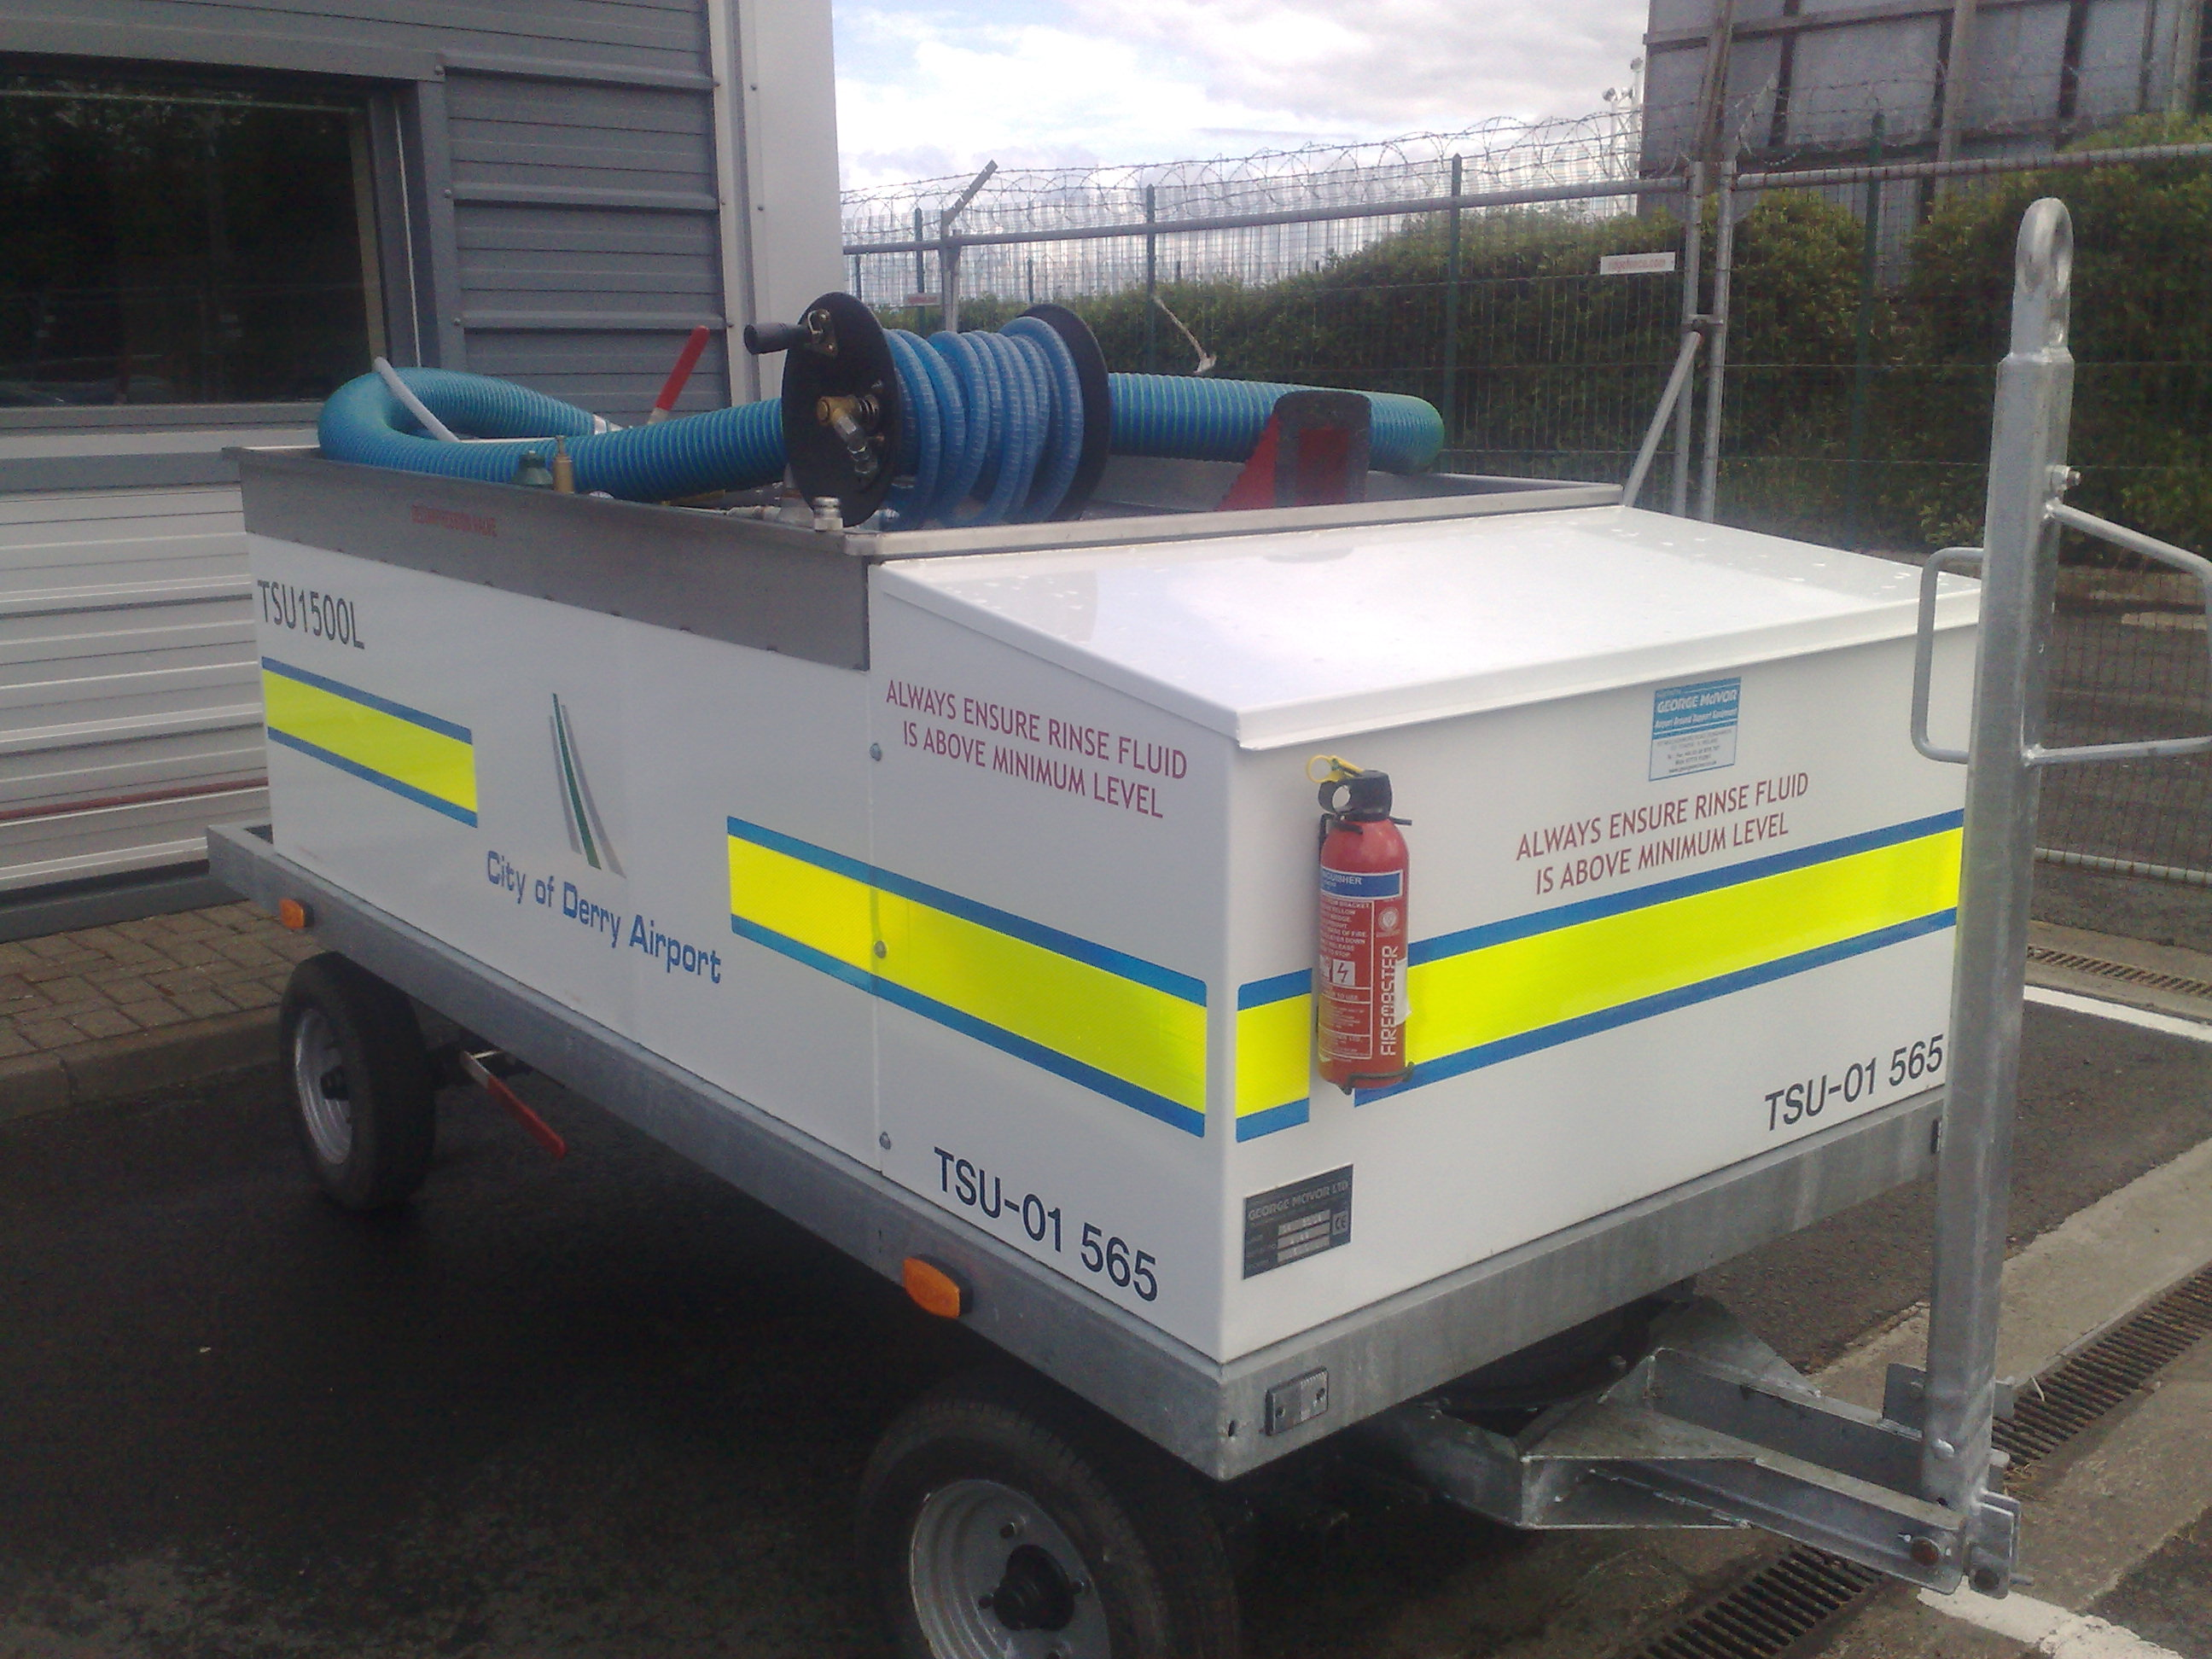 Miscellaneous Aircraft Ground Support Equipment Amp Cargo